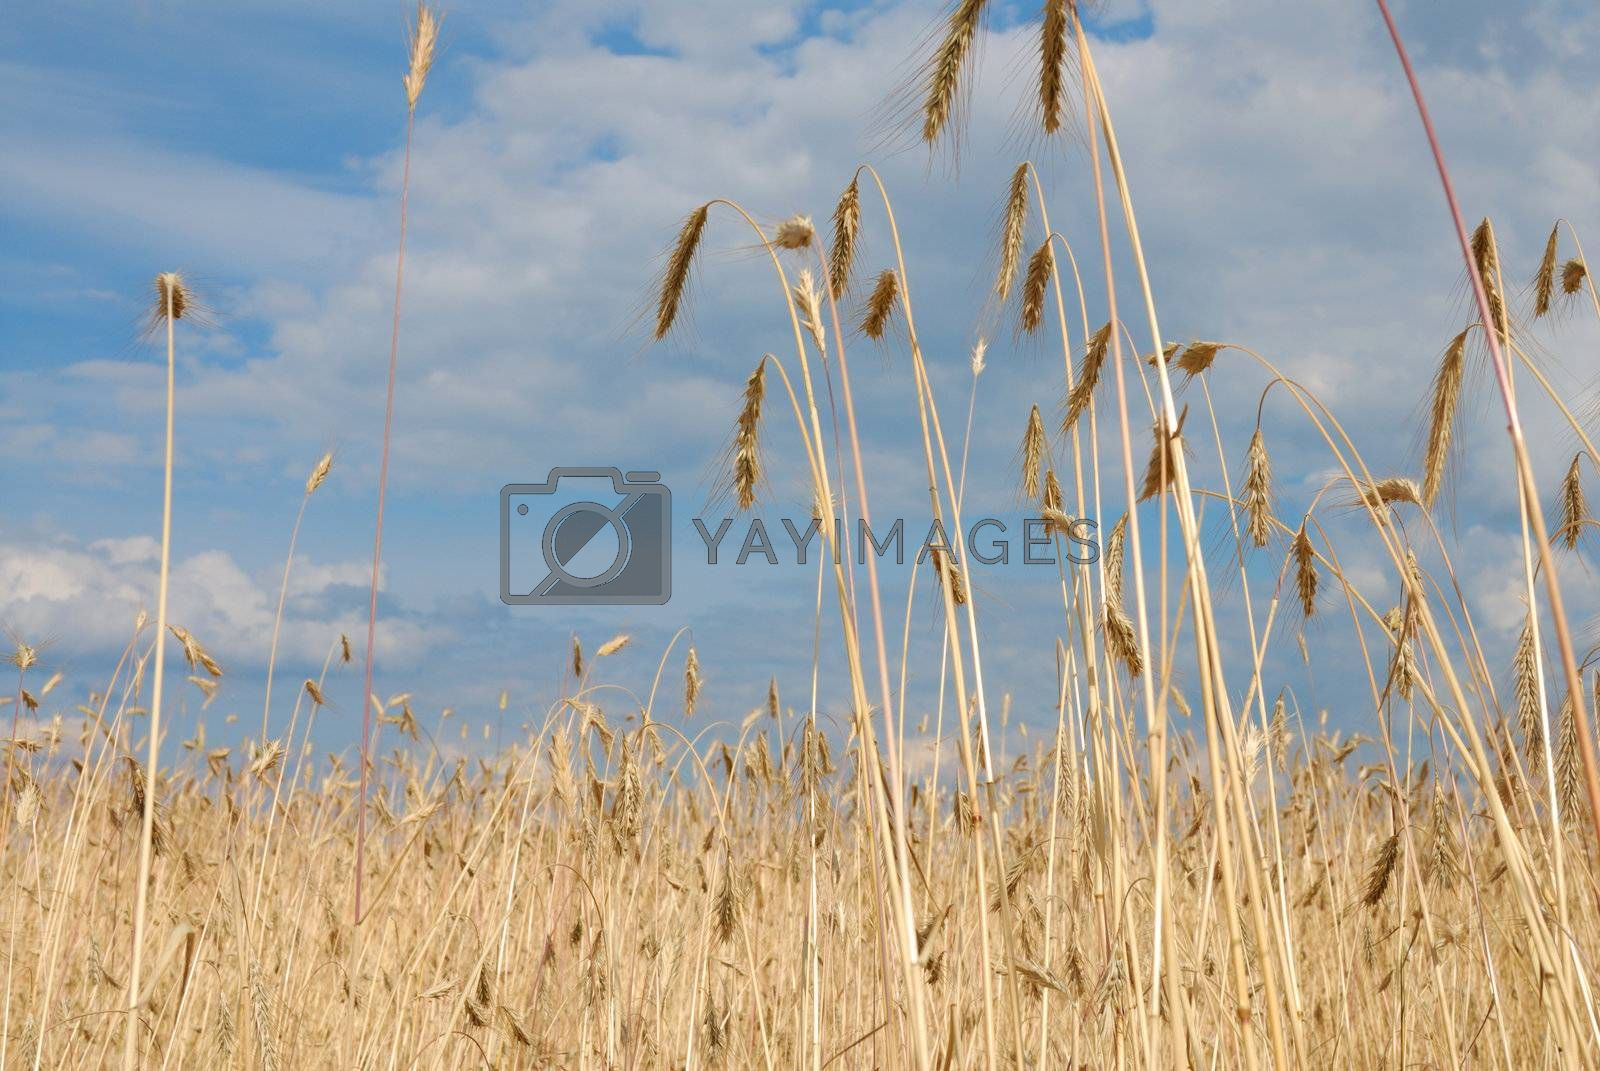 Rural scenery: cereal field against blue sky.